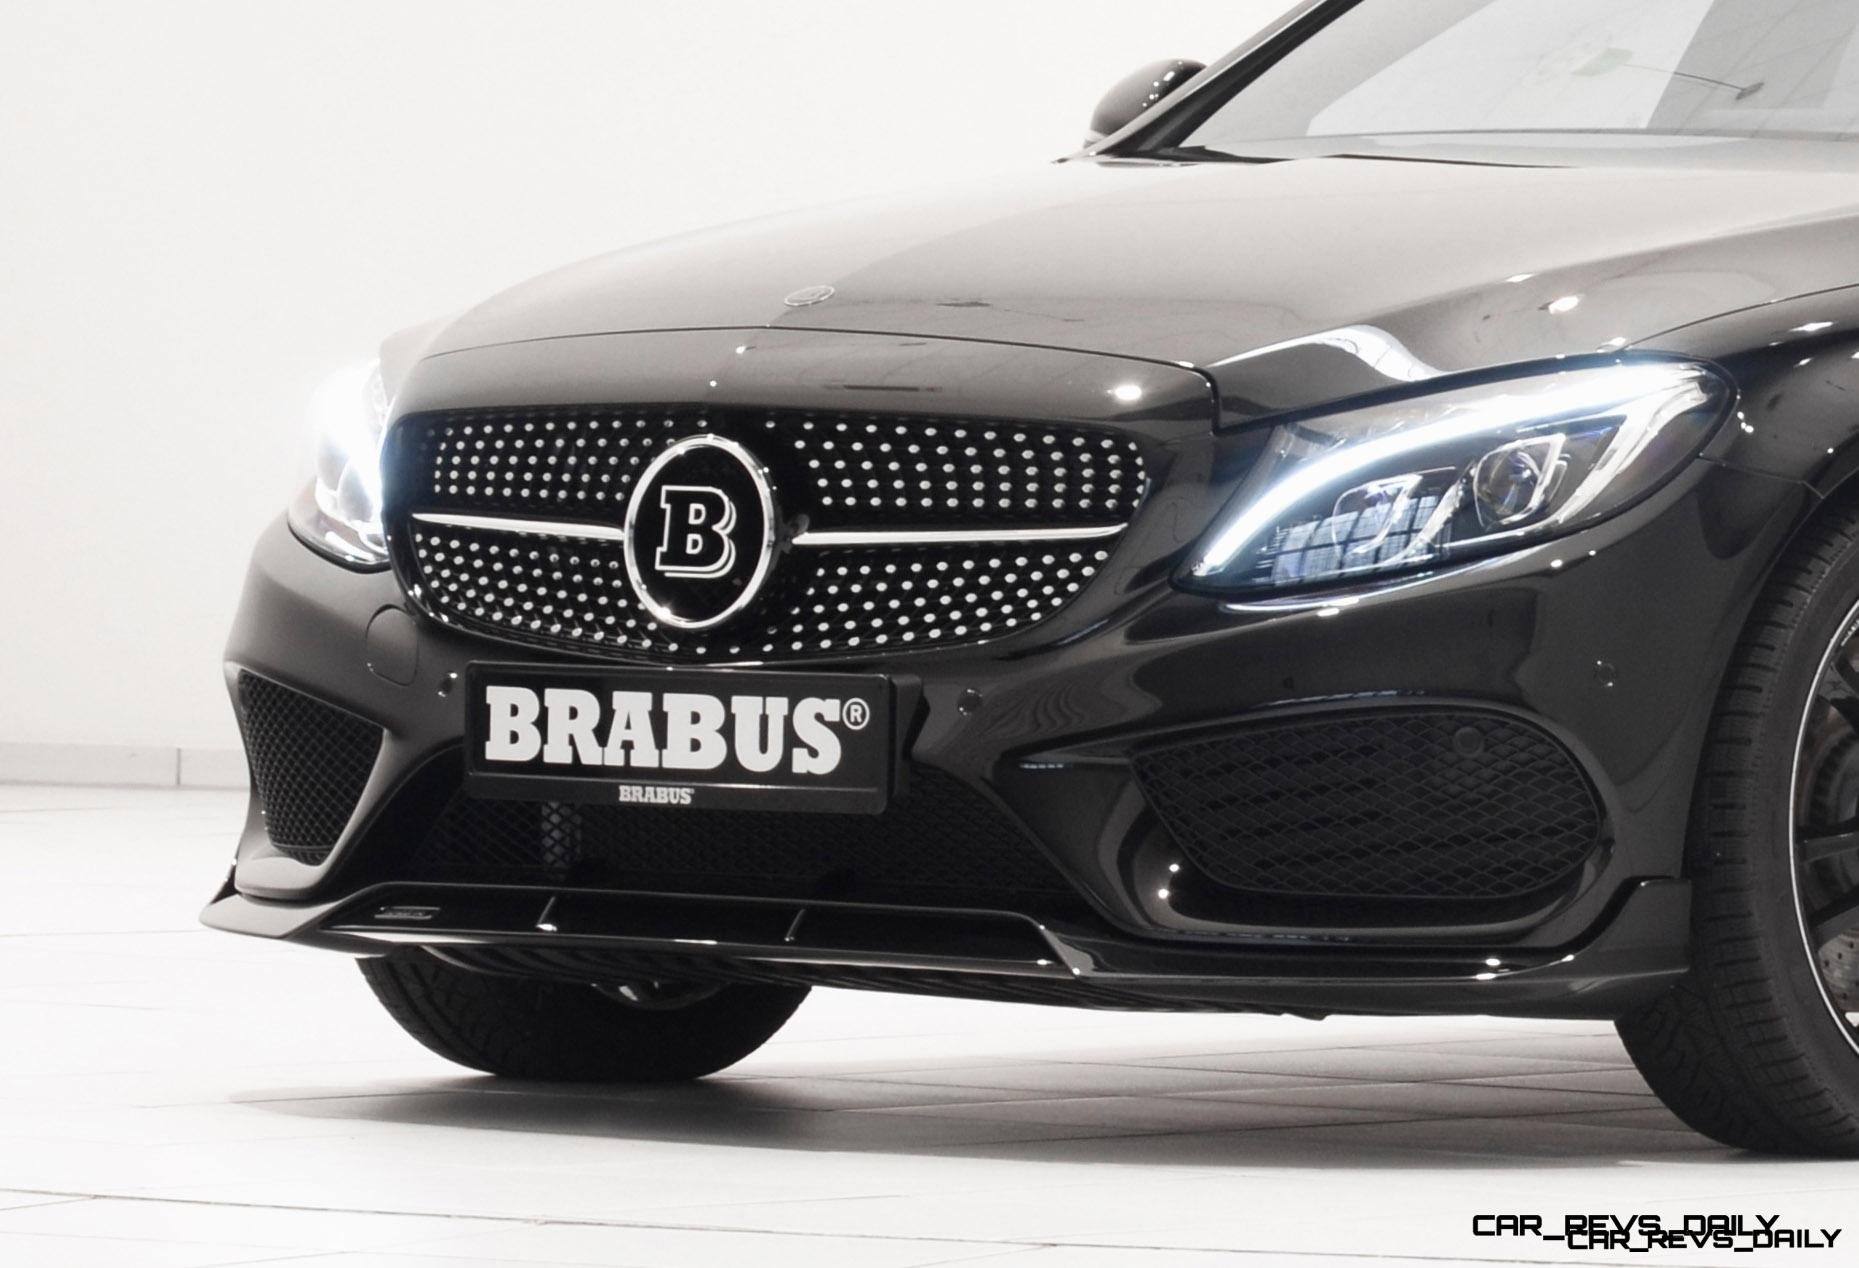 4 4s, 174MPH BRABUS C450 AMG Bumps Power to 410HP Via Now-Warrantied